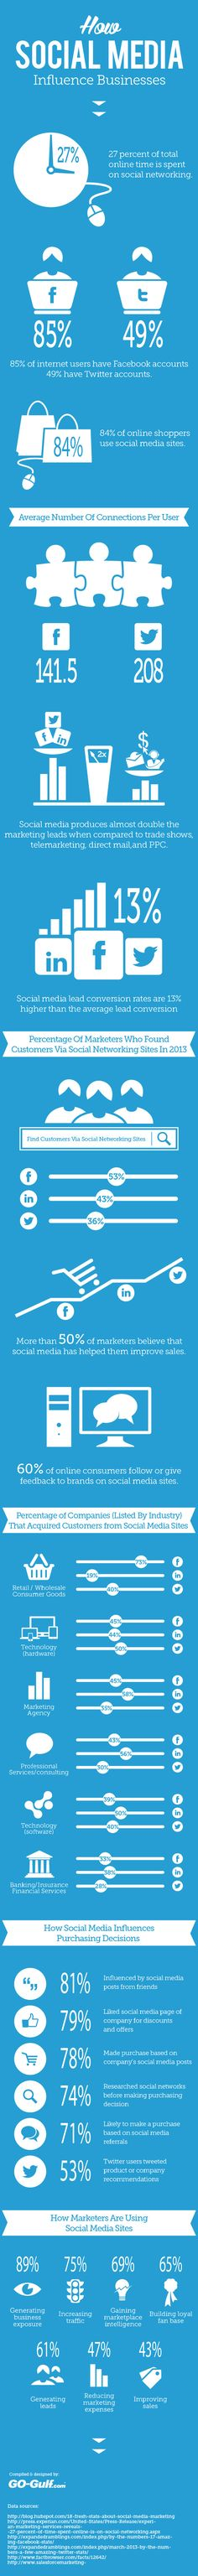 How Social Media Influences Business, Generates Leads And Drives Sales [INFOGRAPHIC]